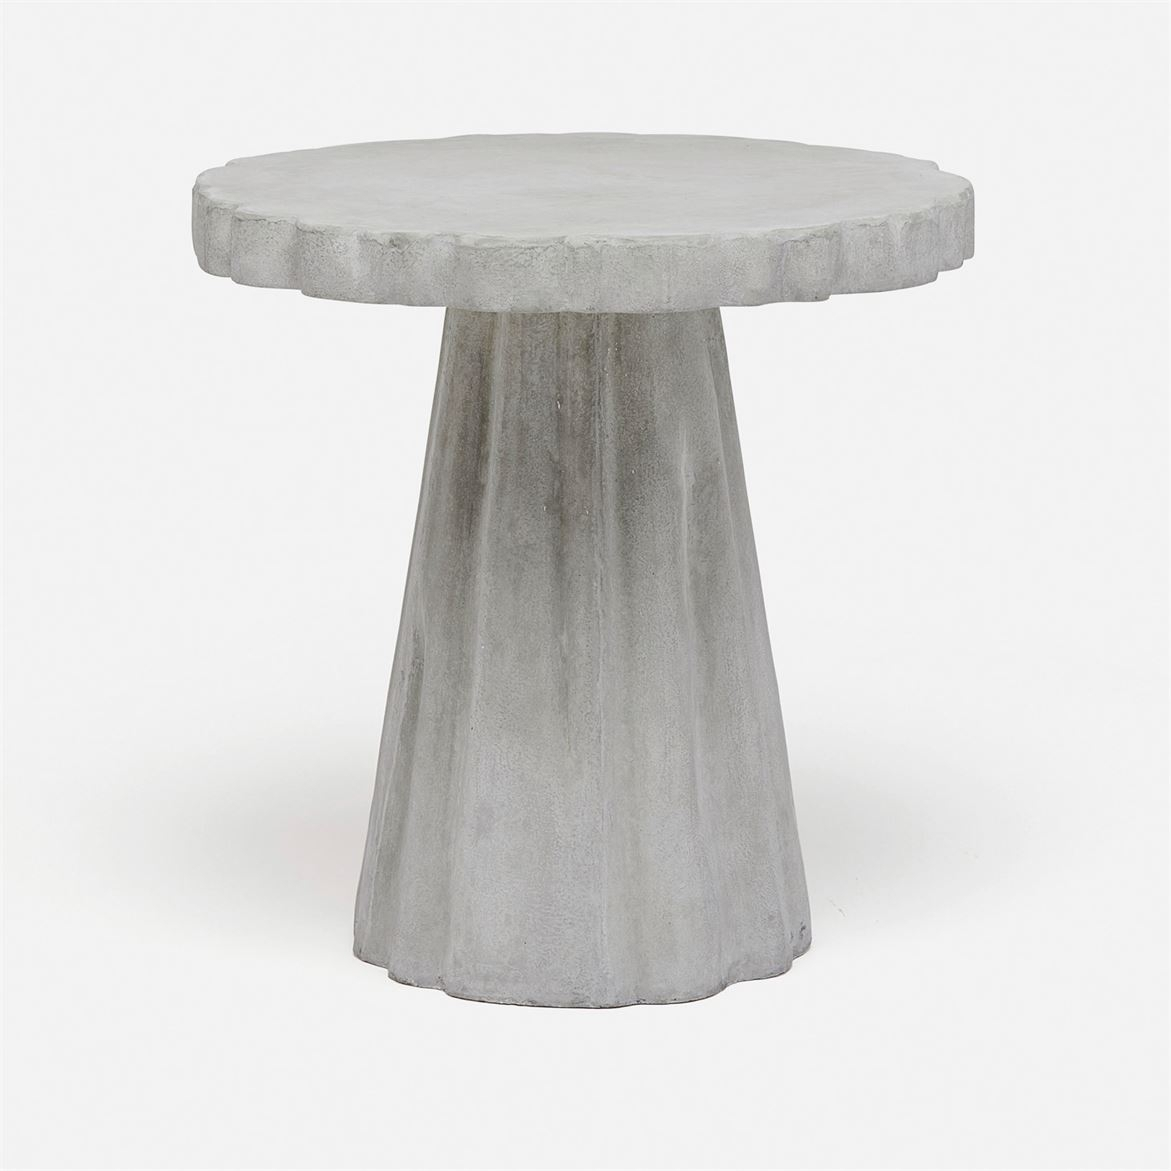 Made Goods In 2017 Grady Round Dining Tables (View 14 of 20)